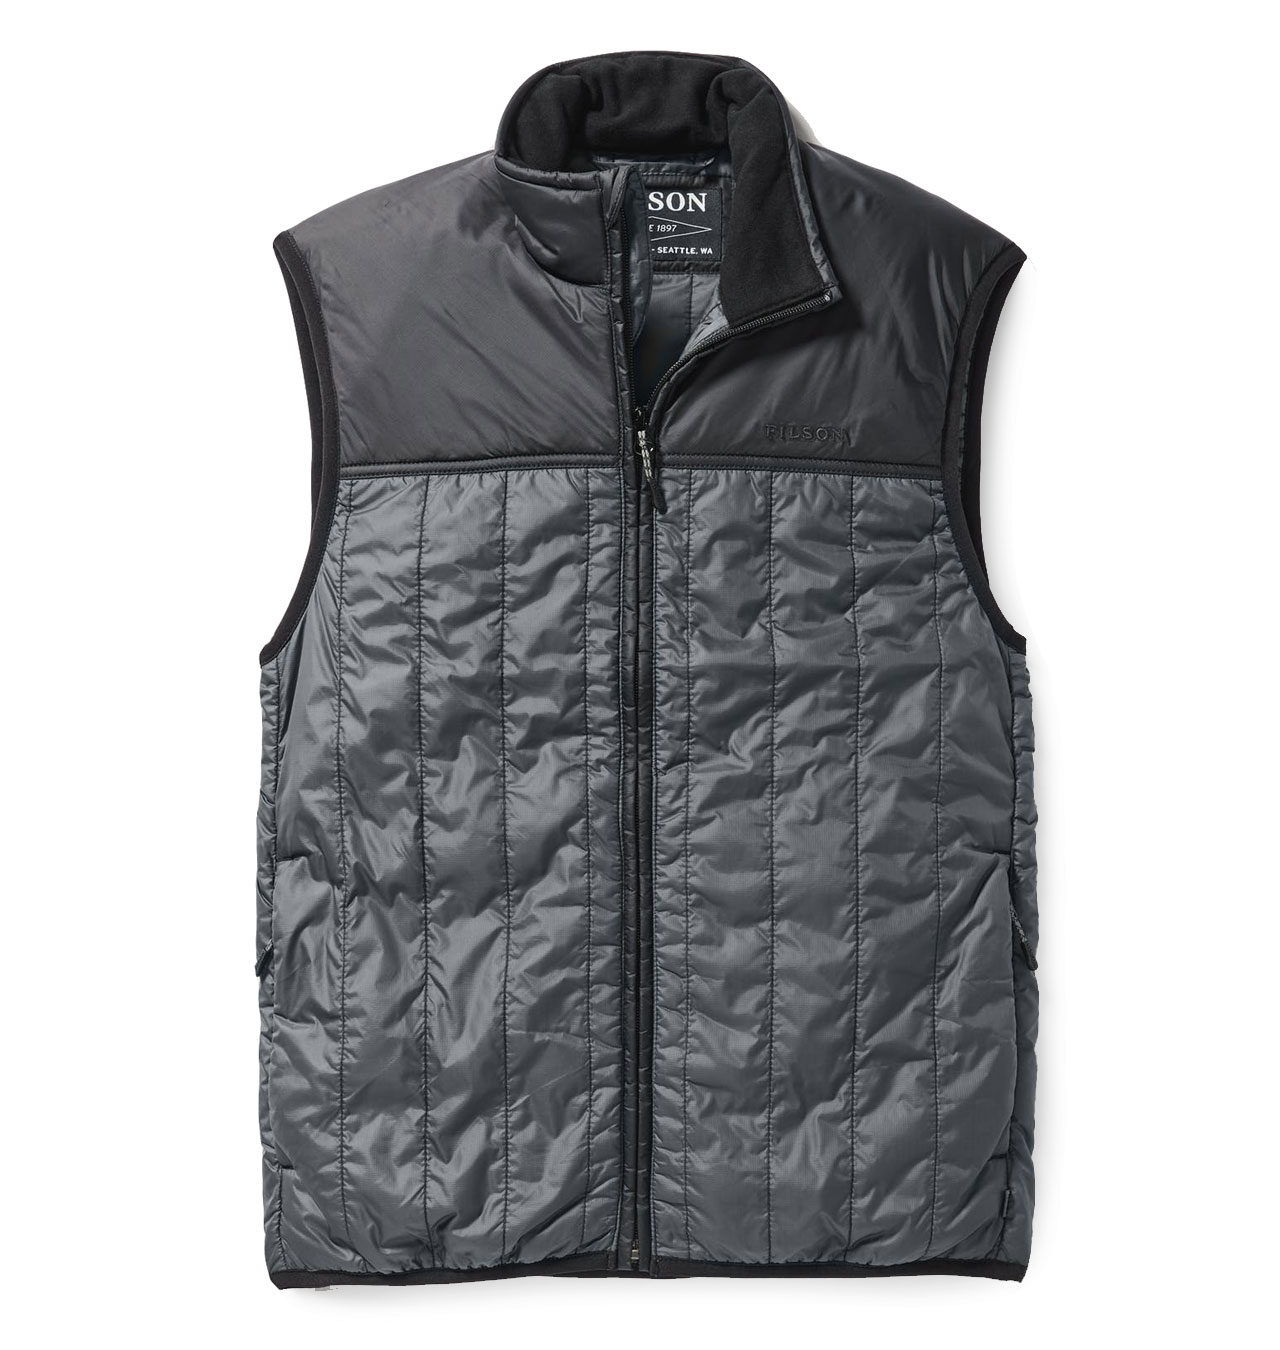 Filson - Ultra-Light Vest - Black